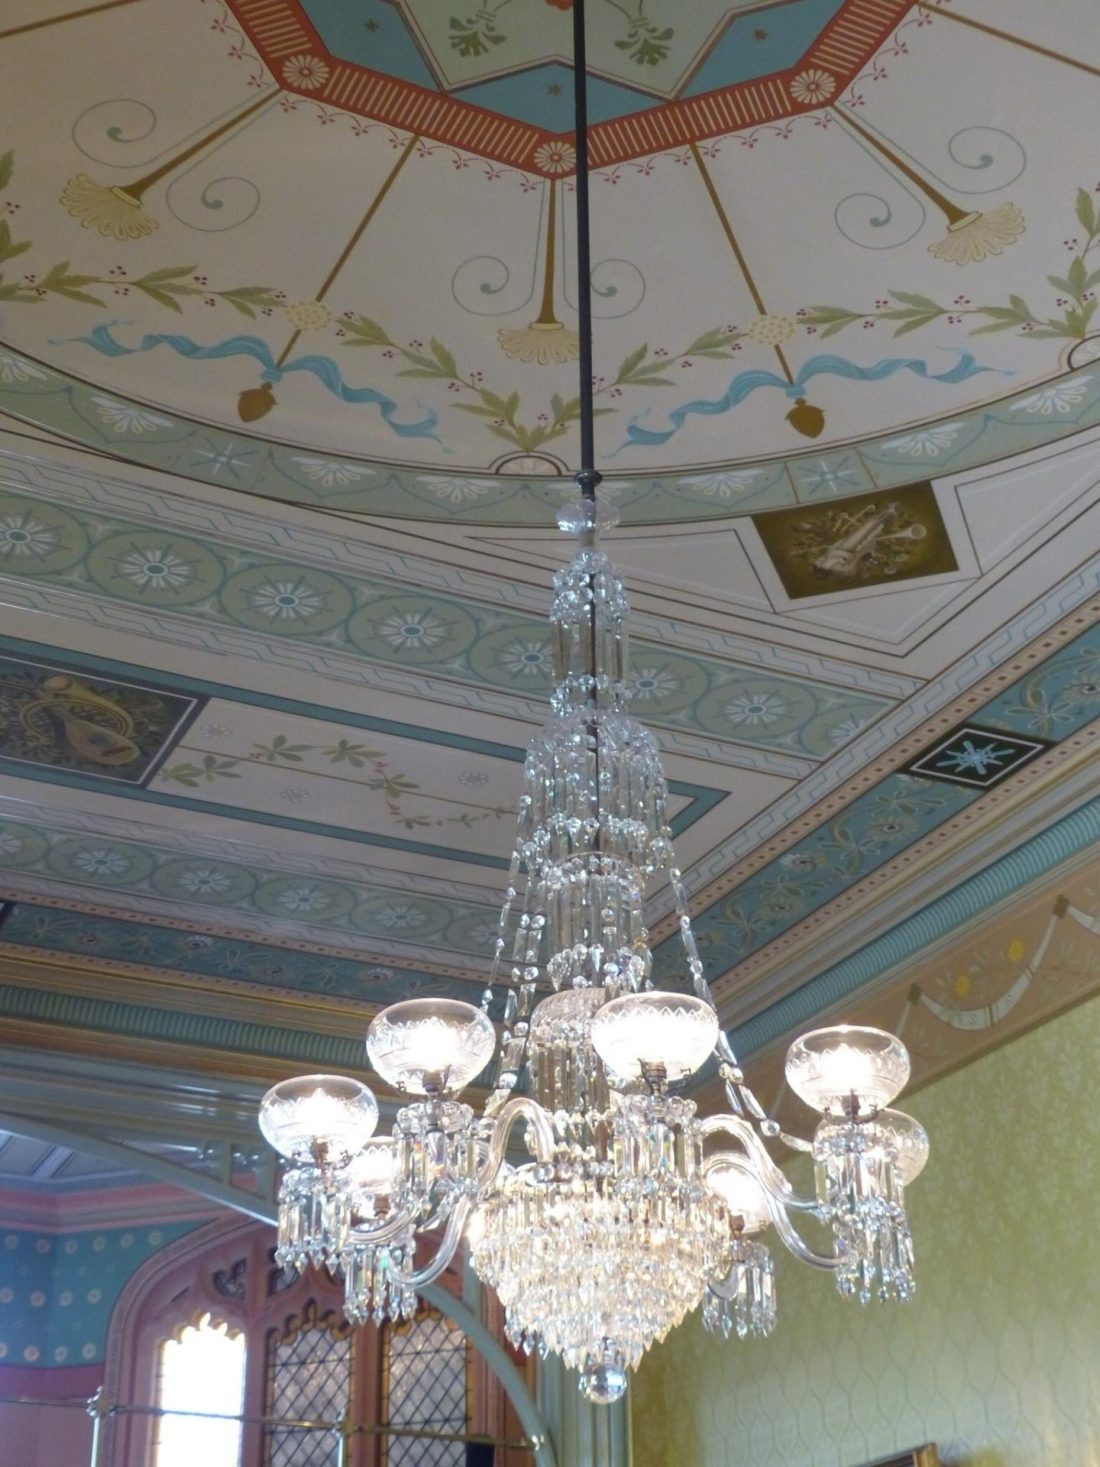 Chandeliers of Government House, Sydney